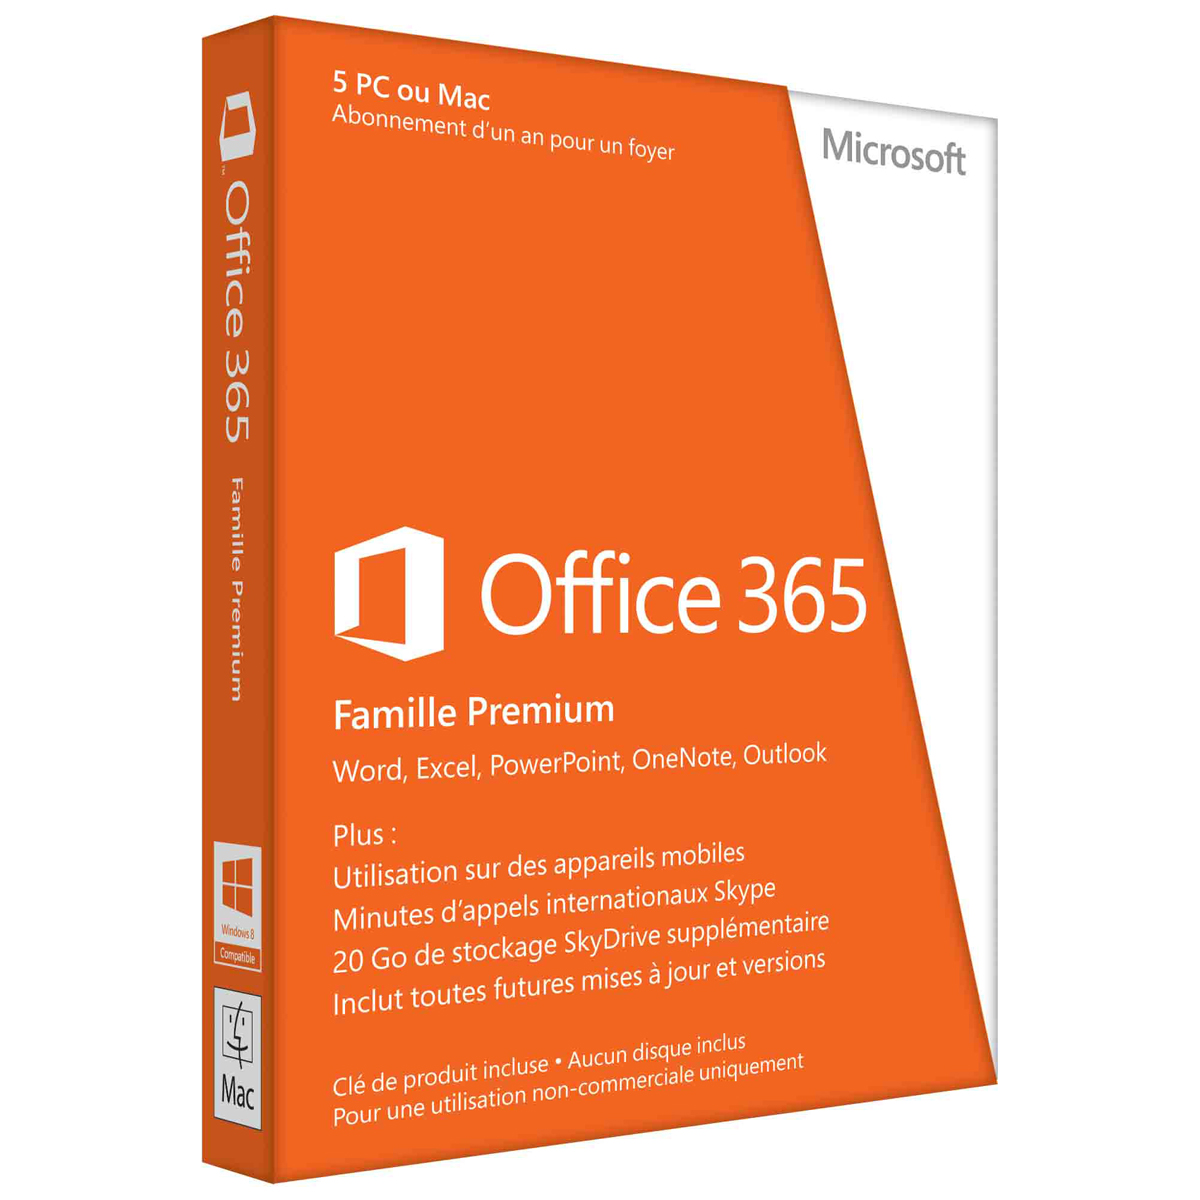 Office 365 Famille Premium - 5 Postes / 1 an